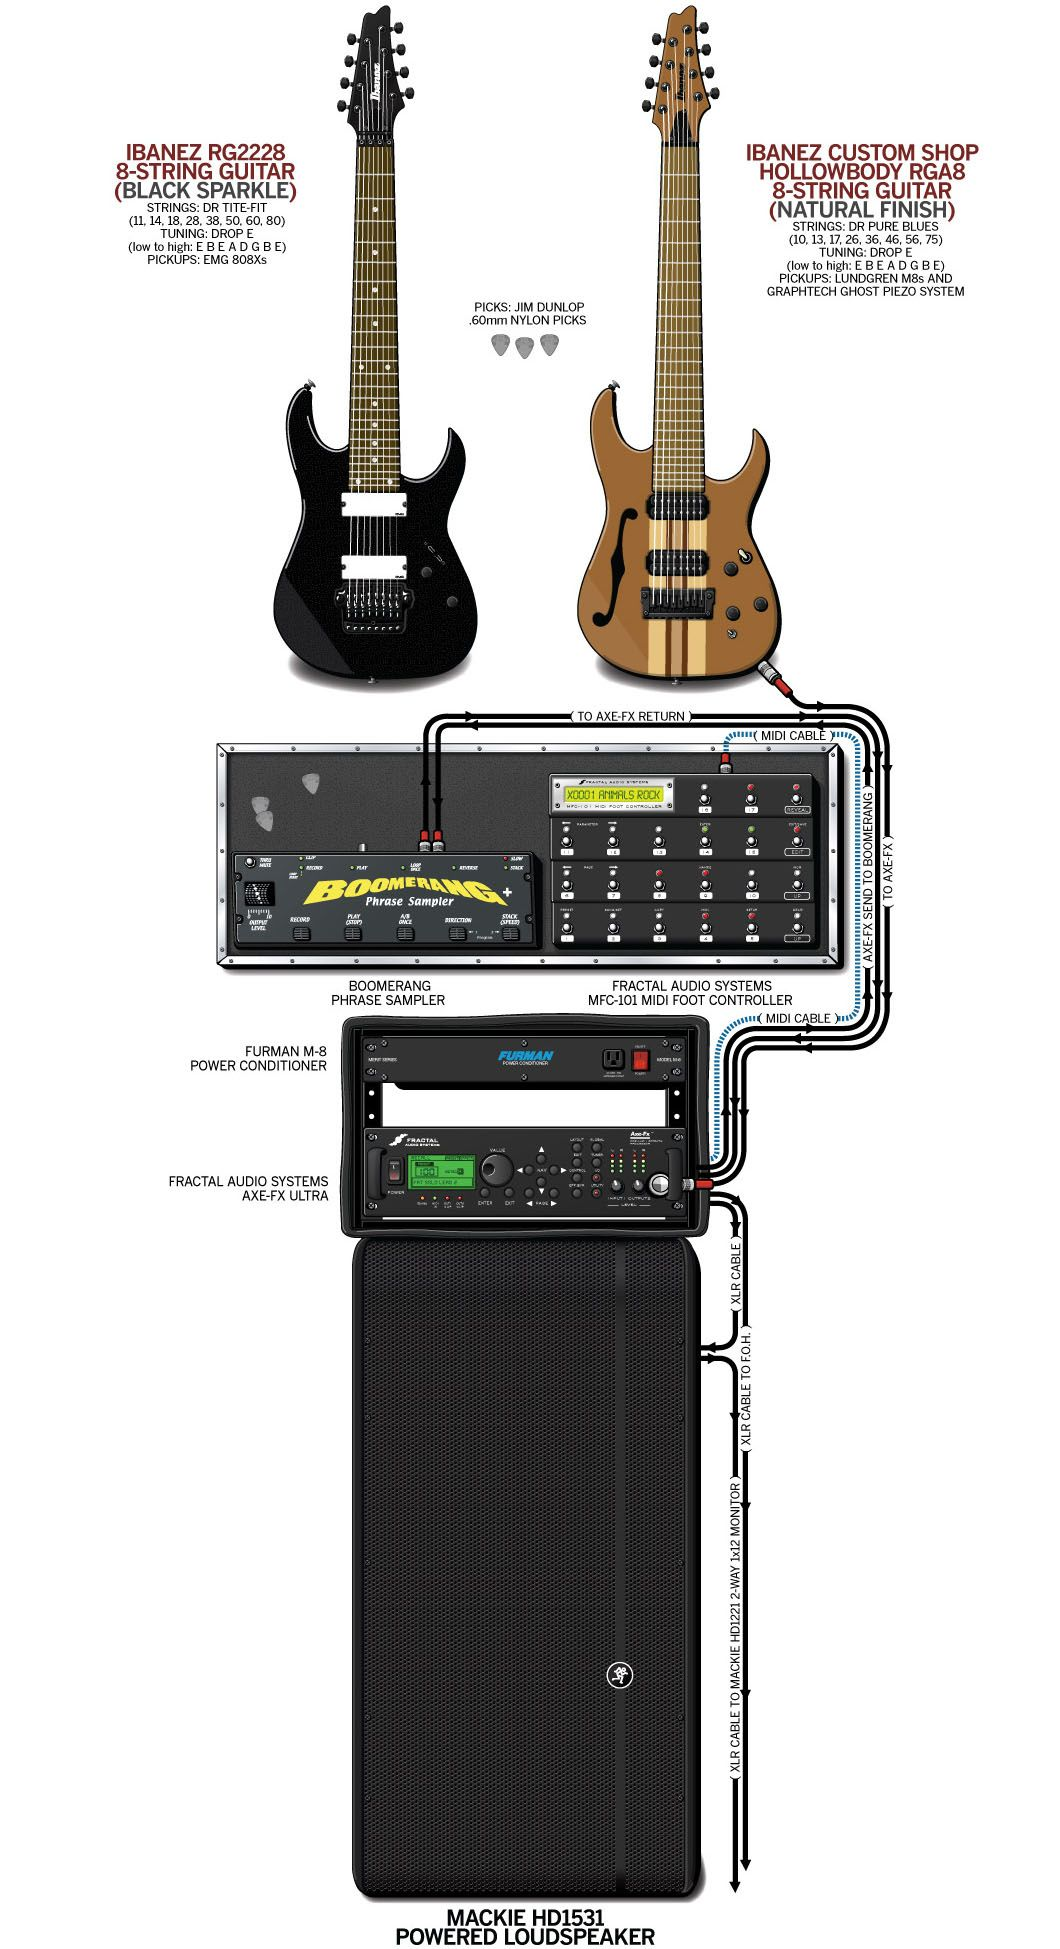 Tosin Abasi Guitar Rig Animals As Leaders Guitar Rig Tosin Abasi Guitar Gear